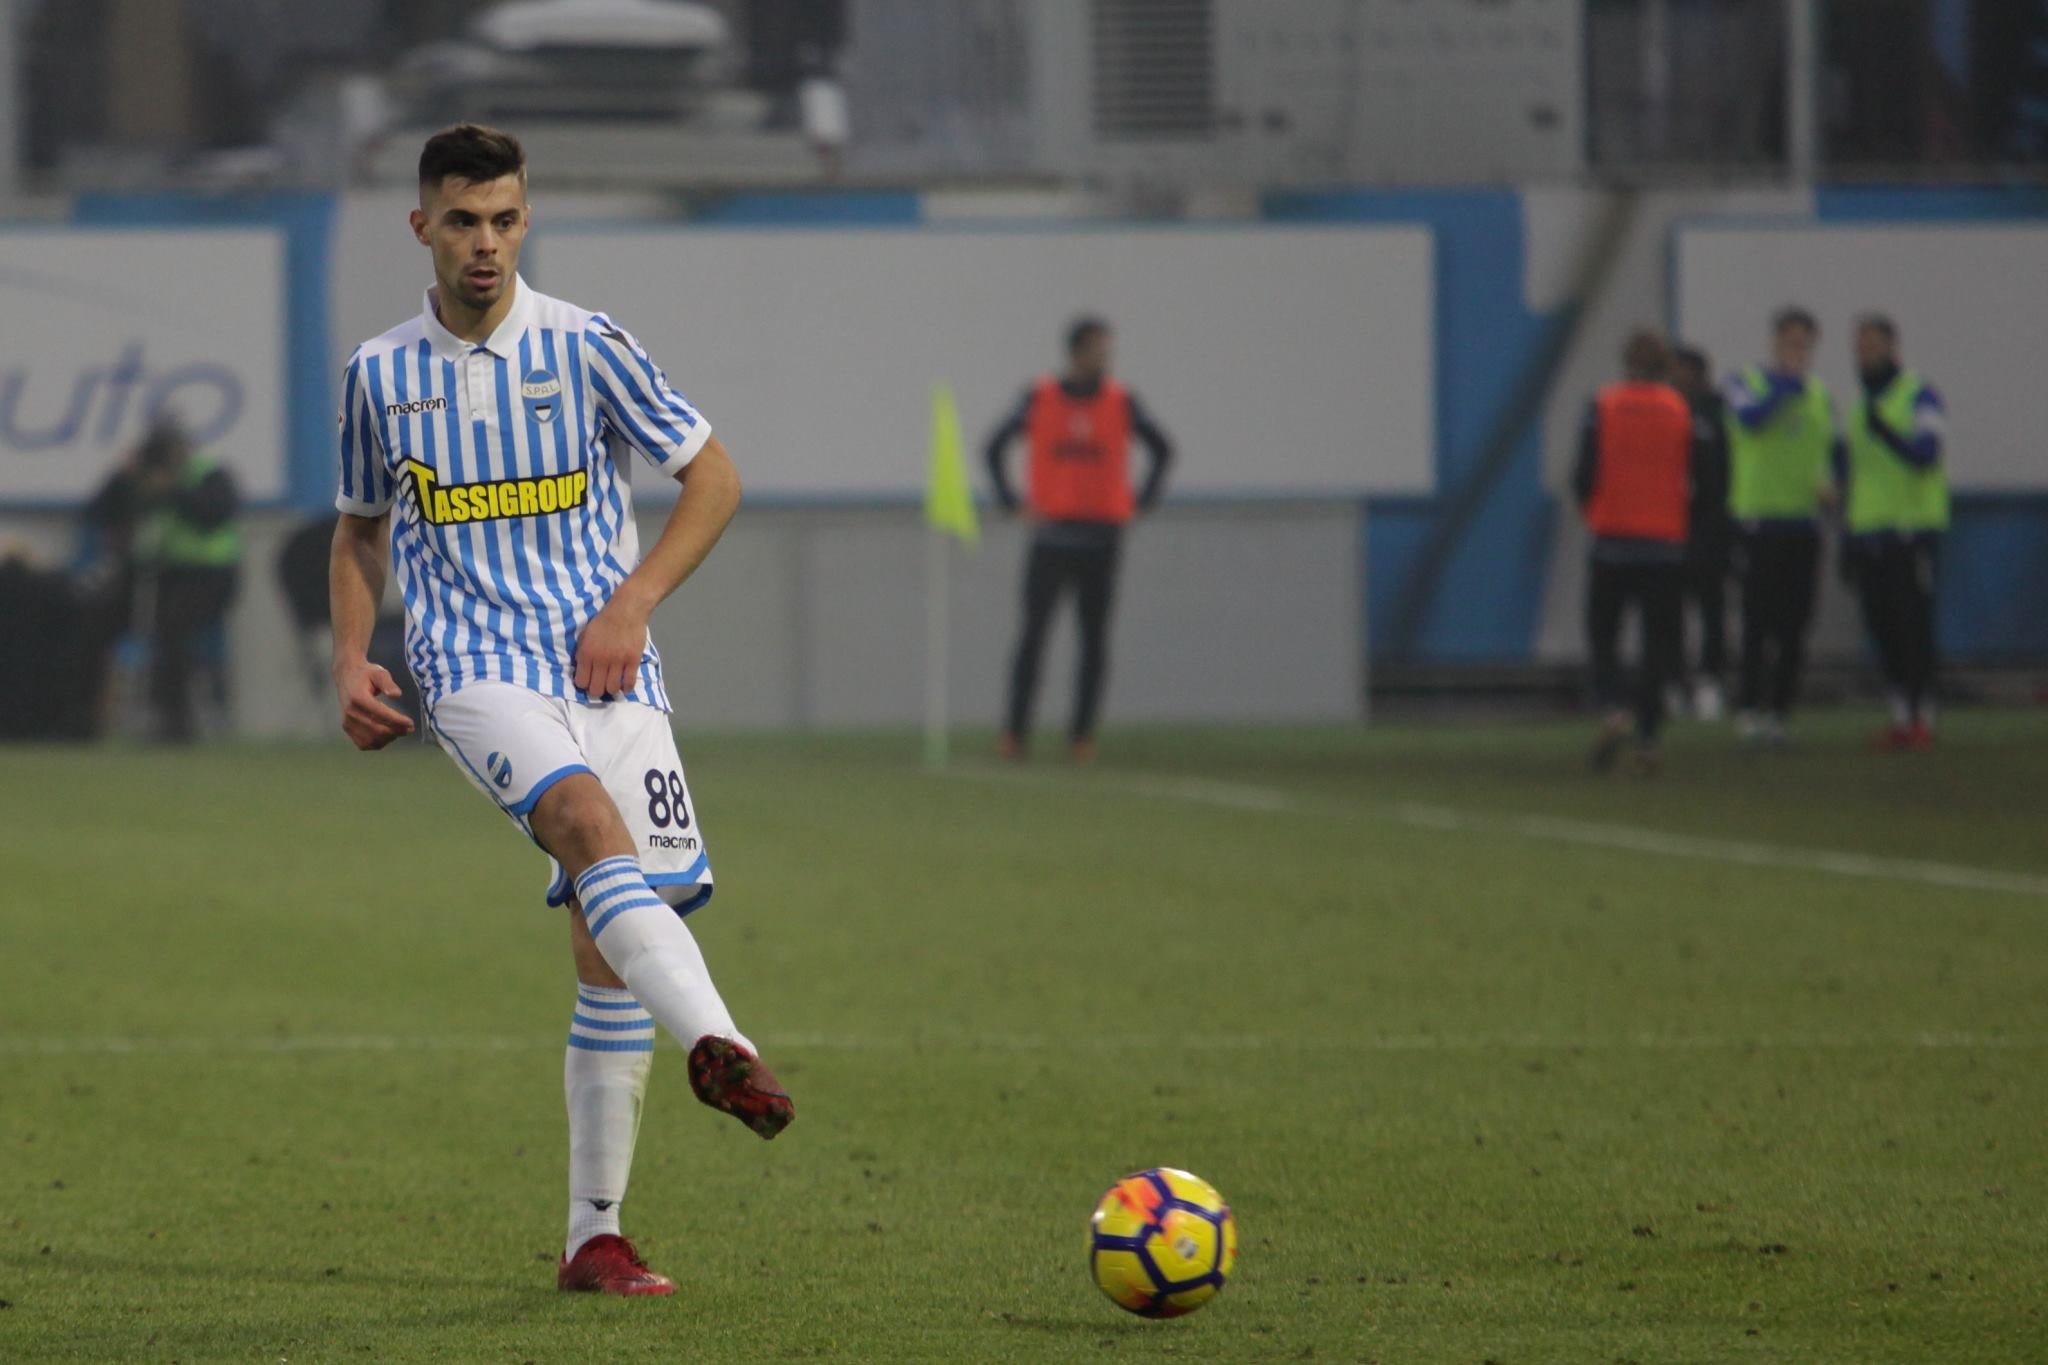 VIDEO – Spal-Bologna 1-0, splendido gol di Grassi